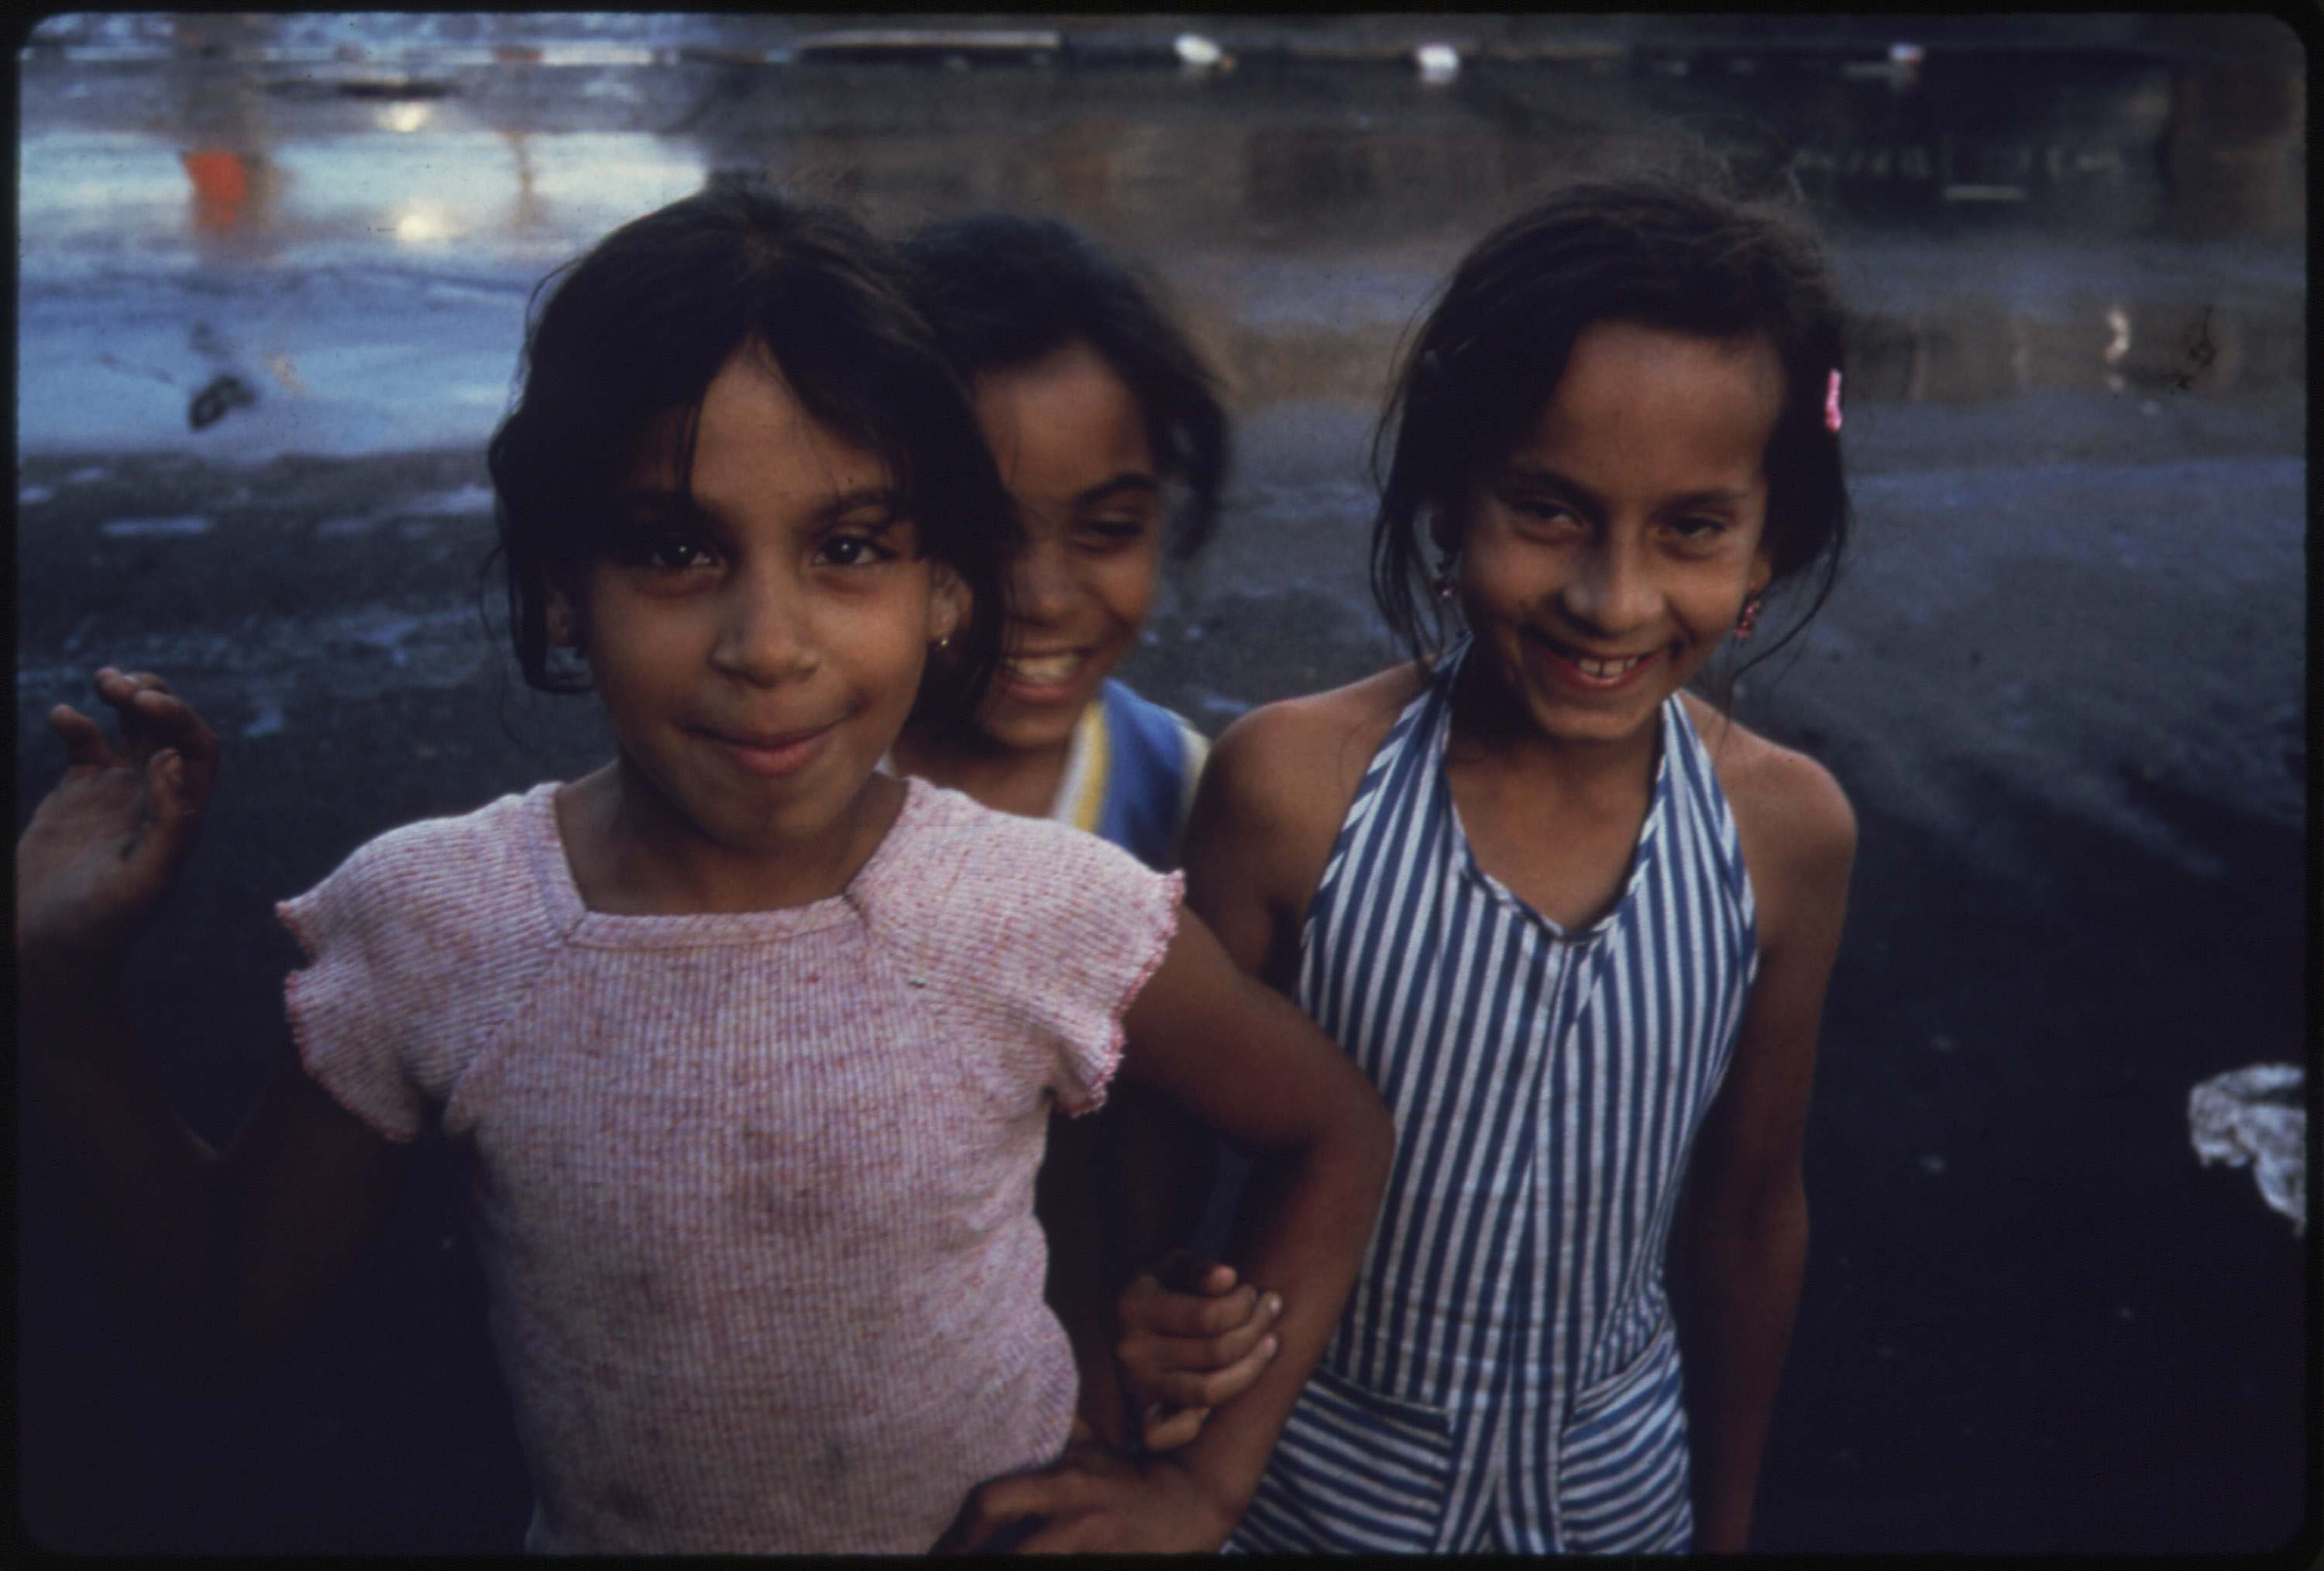 Three young girls in Brooklyn, July 1974.